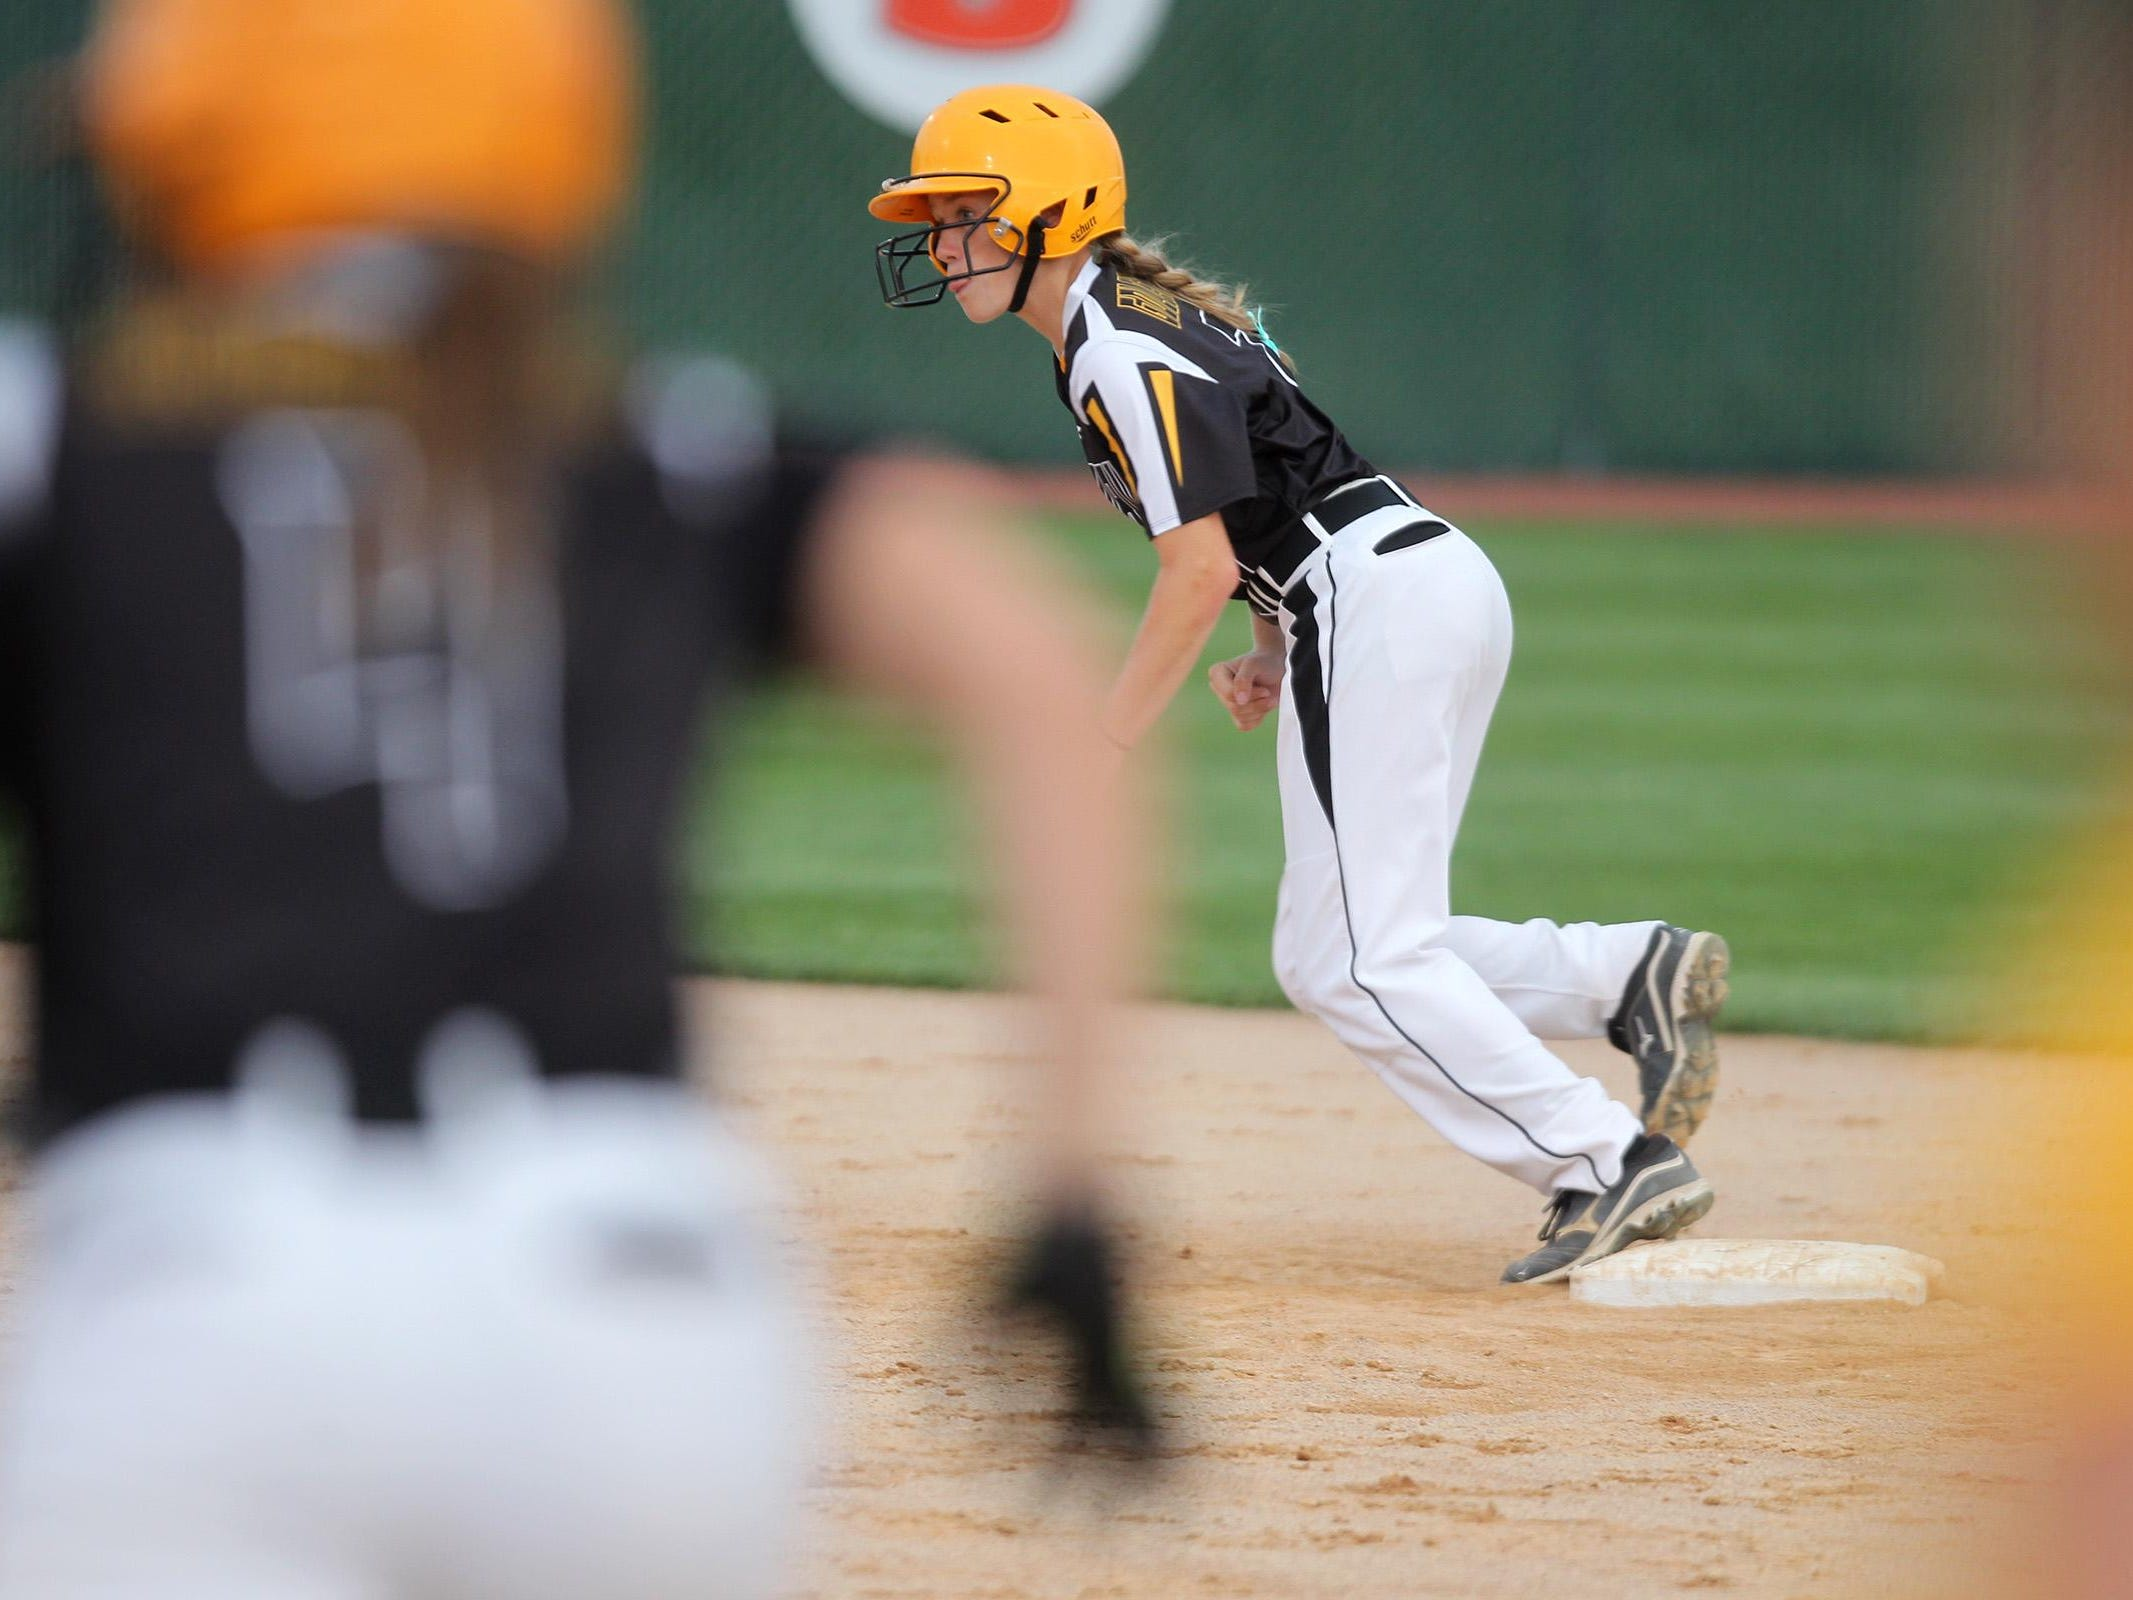 Mid-Prairie's Abby Tornow leads off second base during the Golden Hawks' regional game at Solon on Friday, July 10, 2015. David Scrivner / Iowa City Press-Citizen